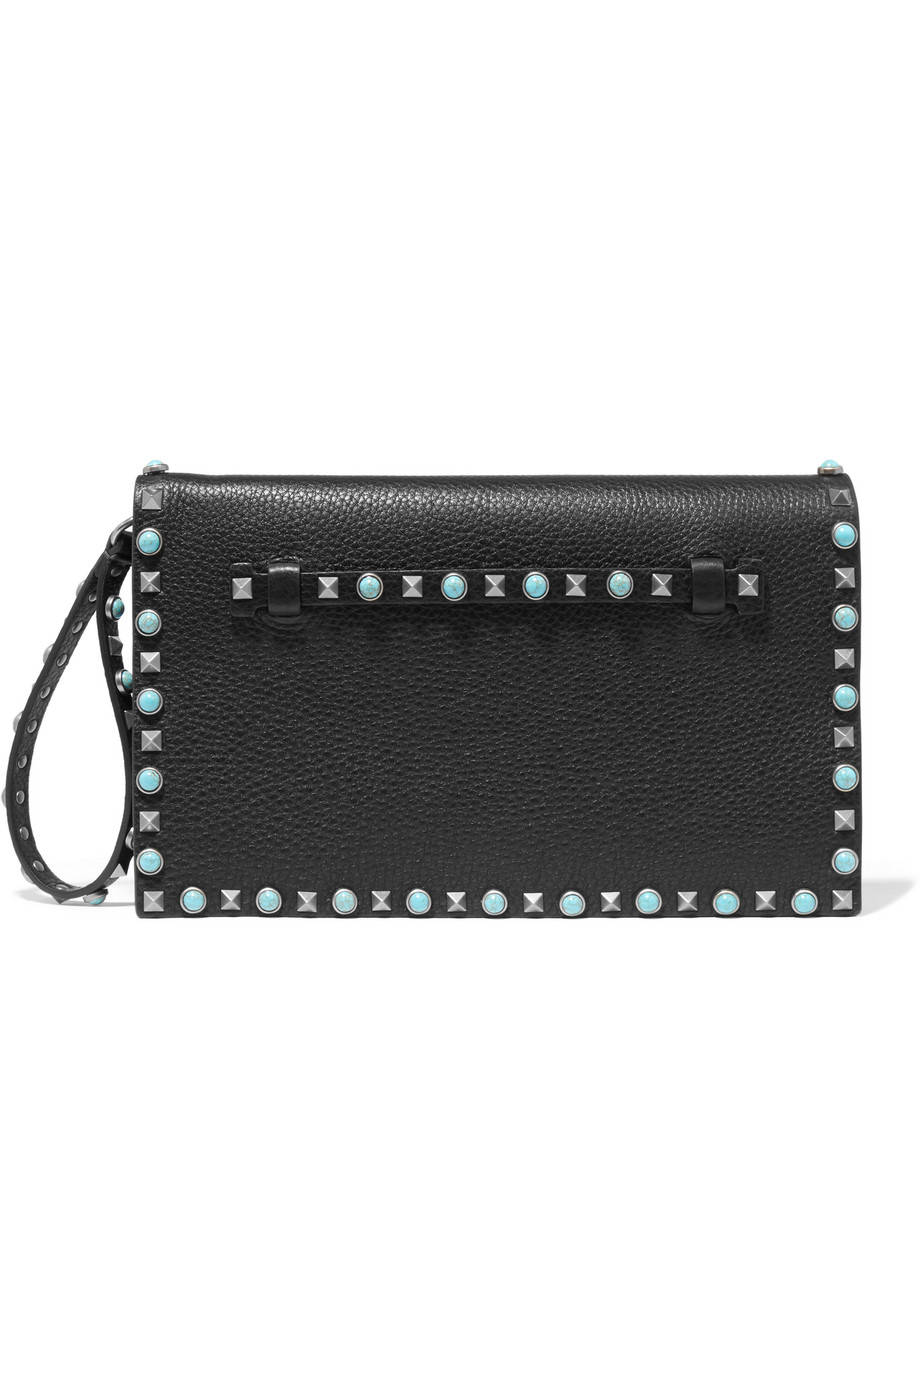 Valentino The Rockstud Embellished Textured-Leather Clutch, Black, Women's